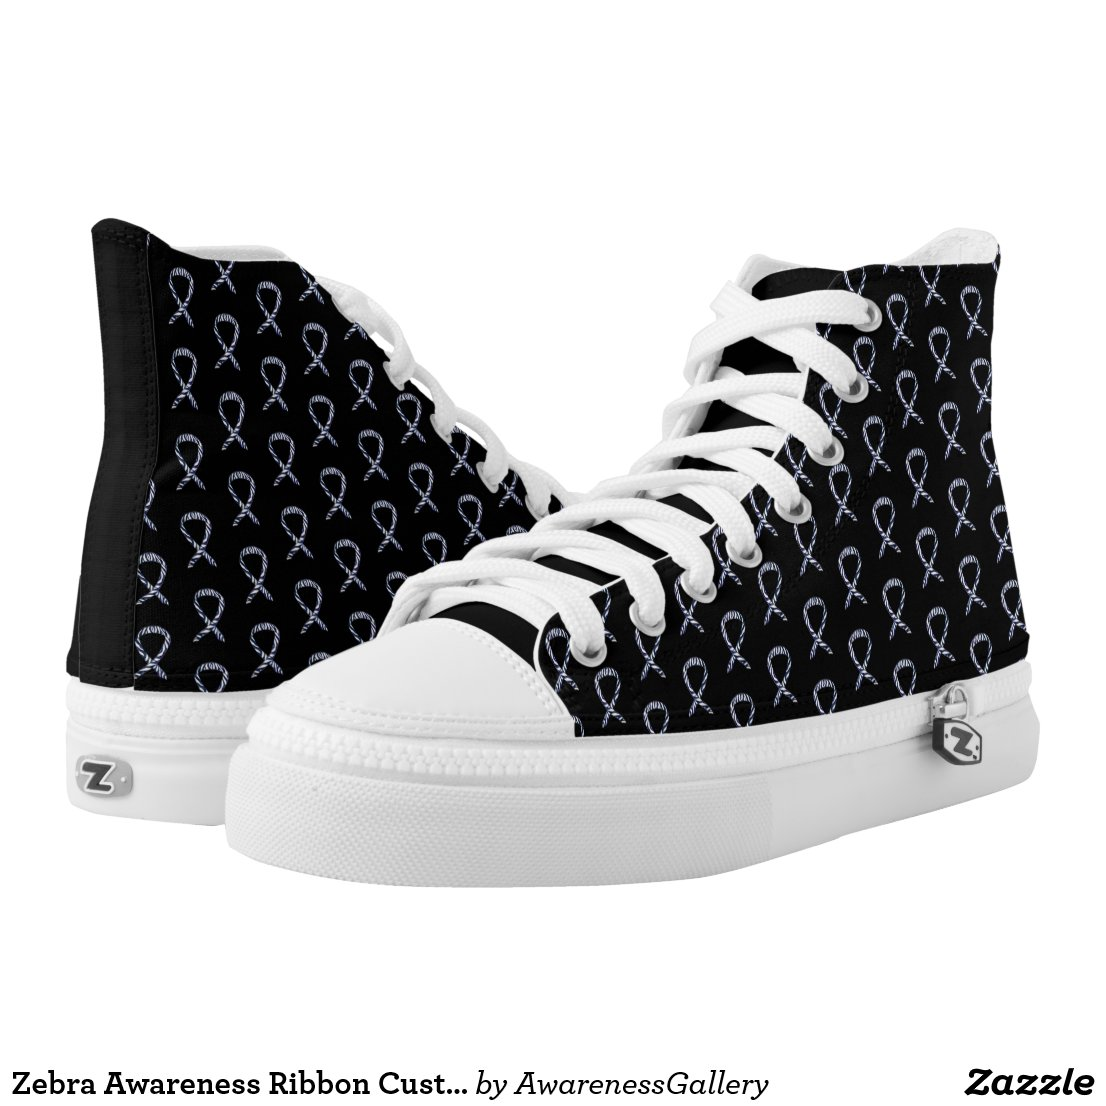 Zebra Awareness Ribbon Custom Shoe Sneakers